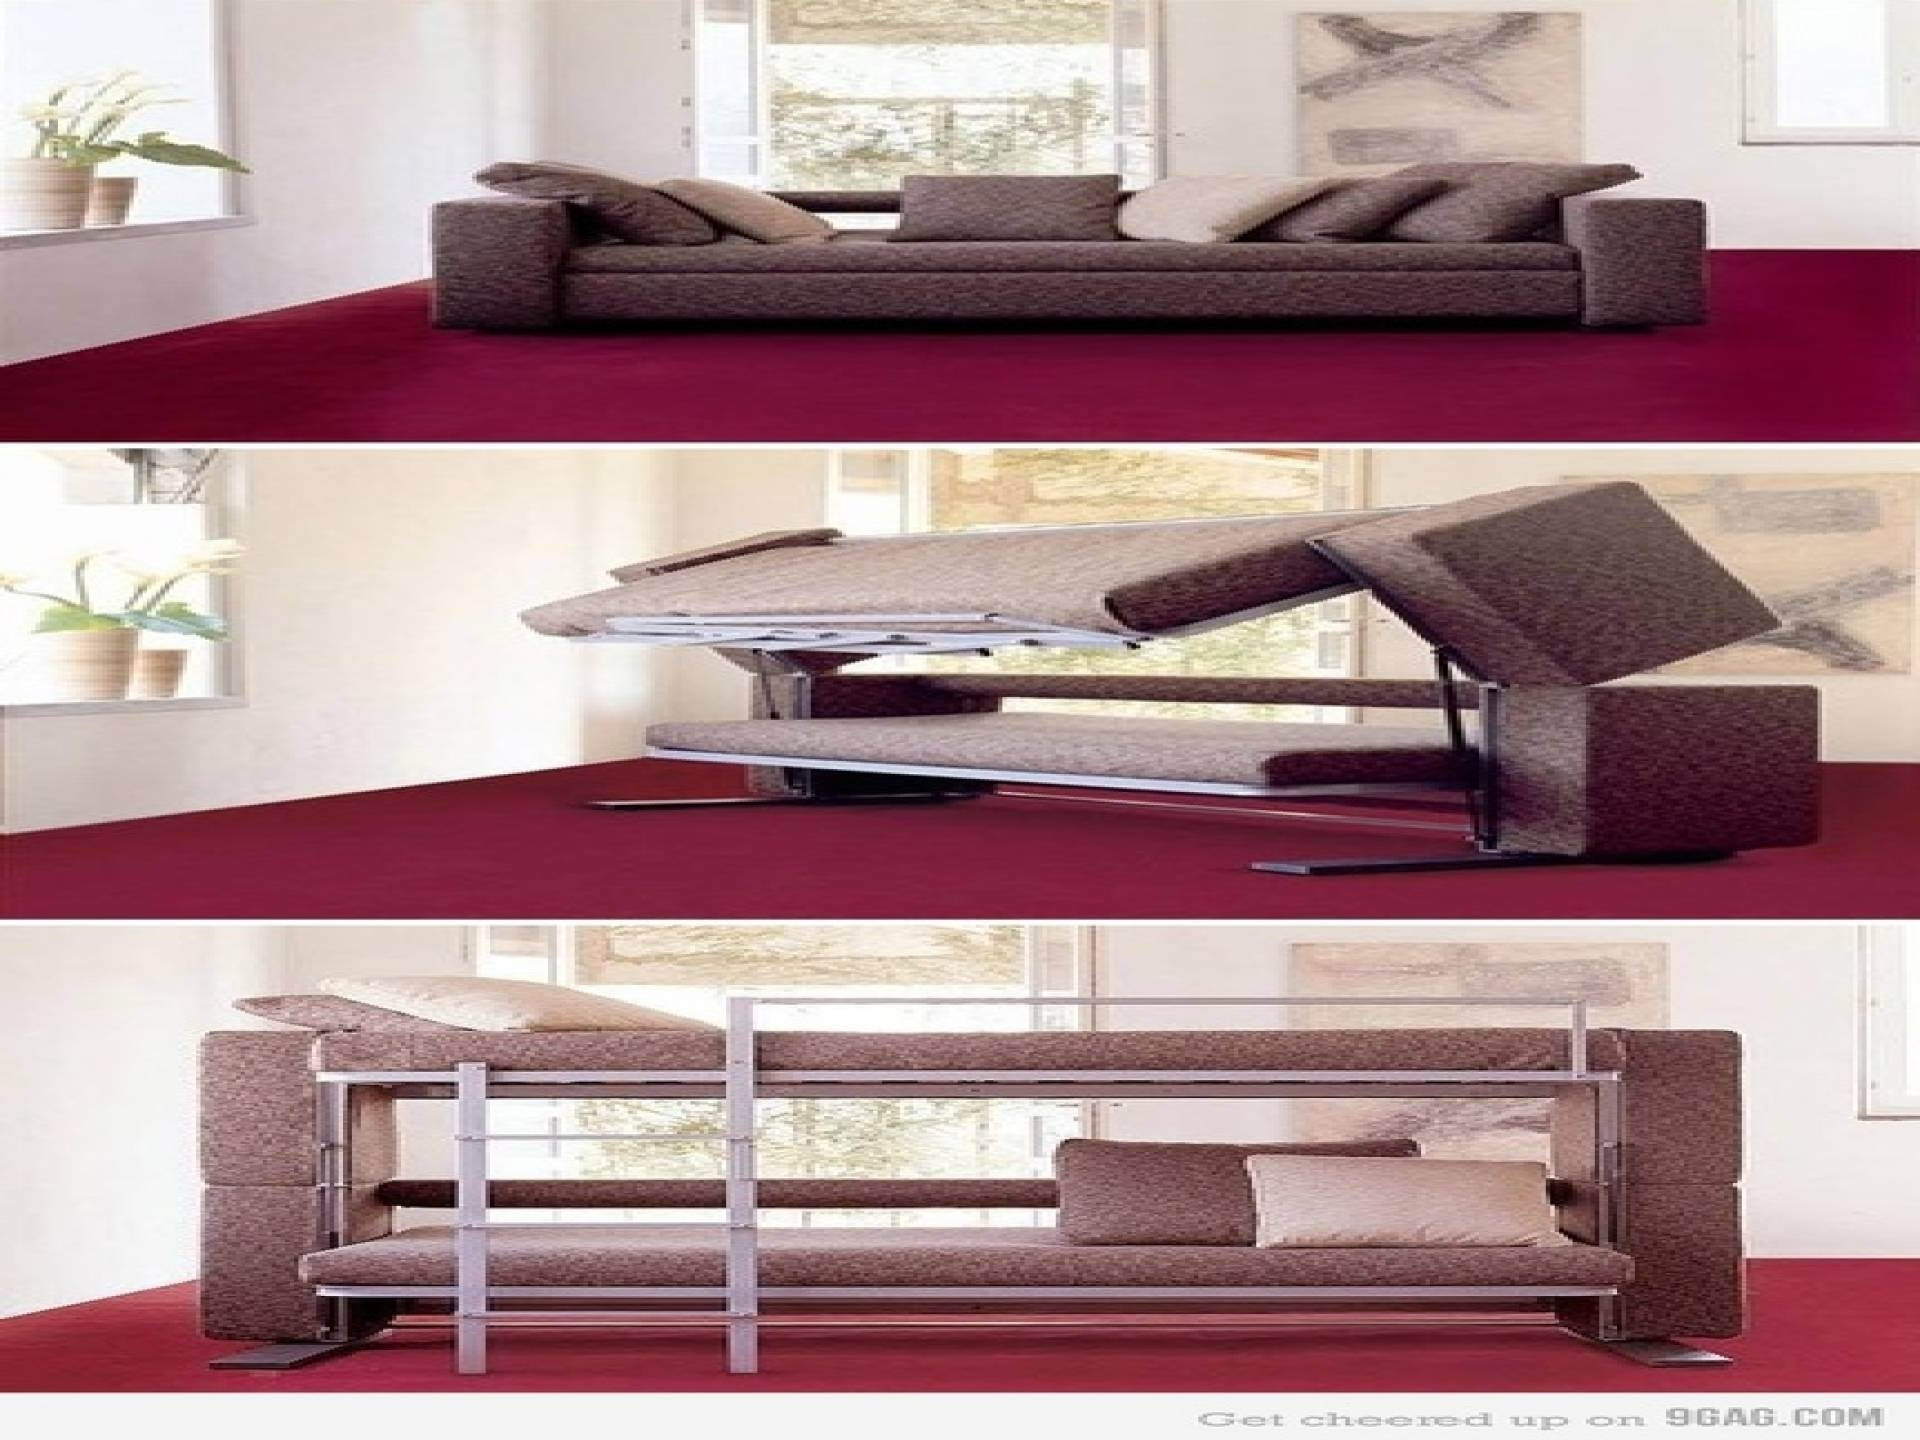 Sofa Bed Design: Sofa Converts To Bunk Beds Palazzo Bunk Bed Couch throughout Sofas Converts To Bunk Bed (Image 11 of 15)